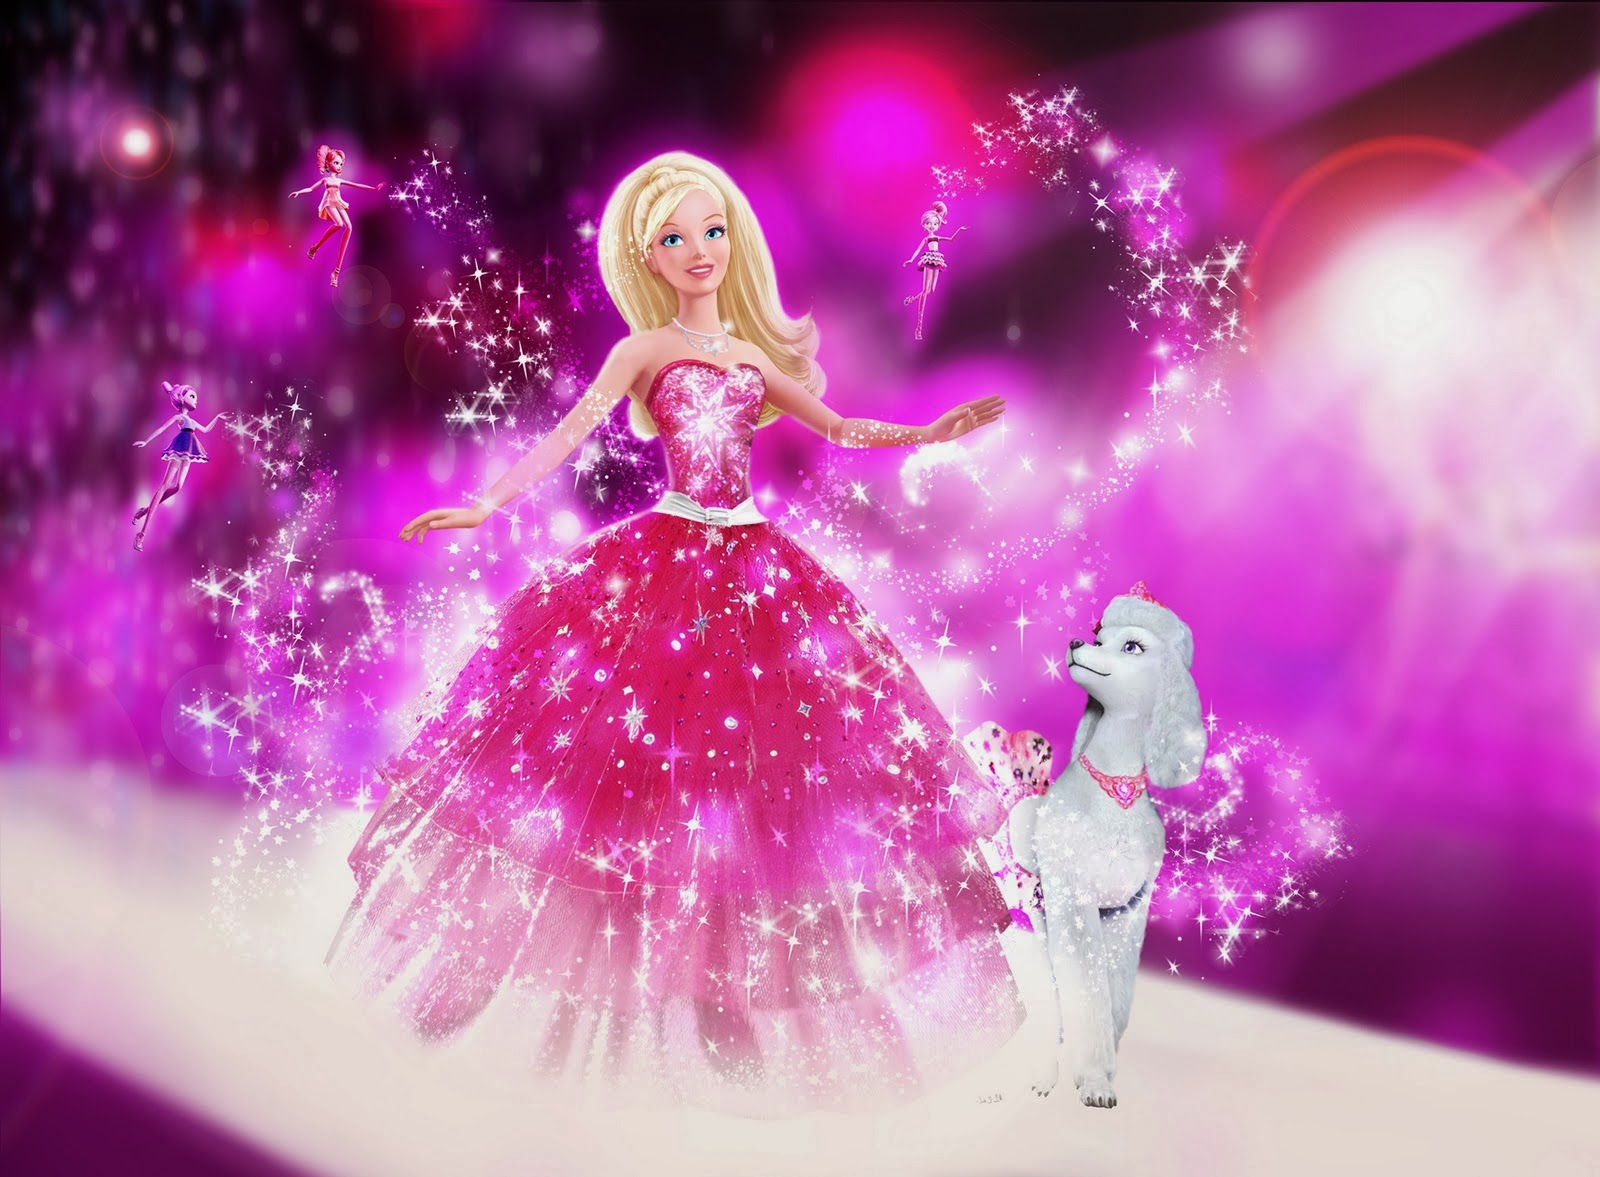 Beautiful HD Wallpapers 4 u Download Barbie Wallpapers 1600x1177